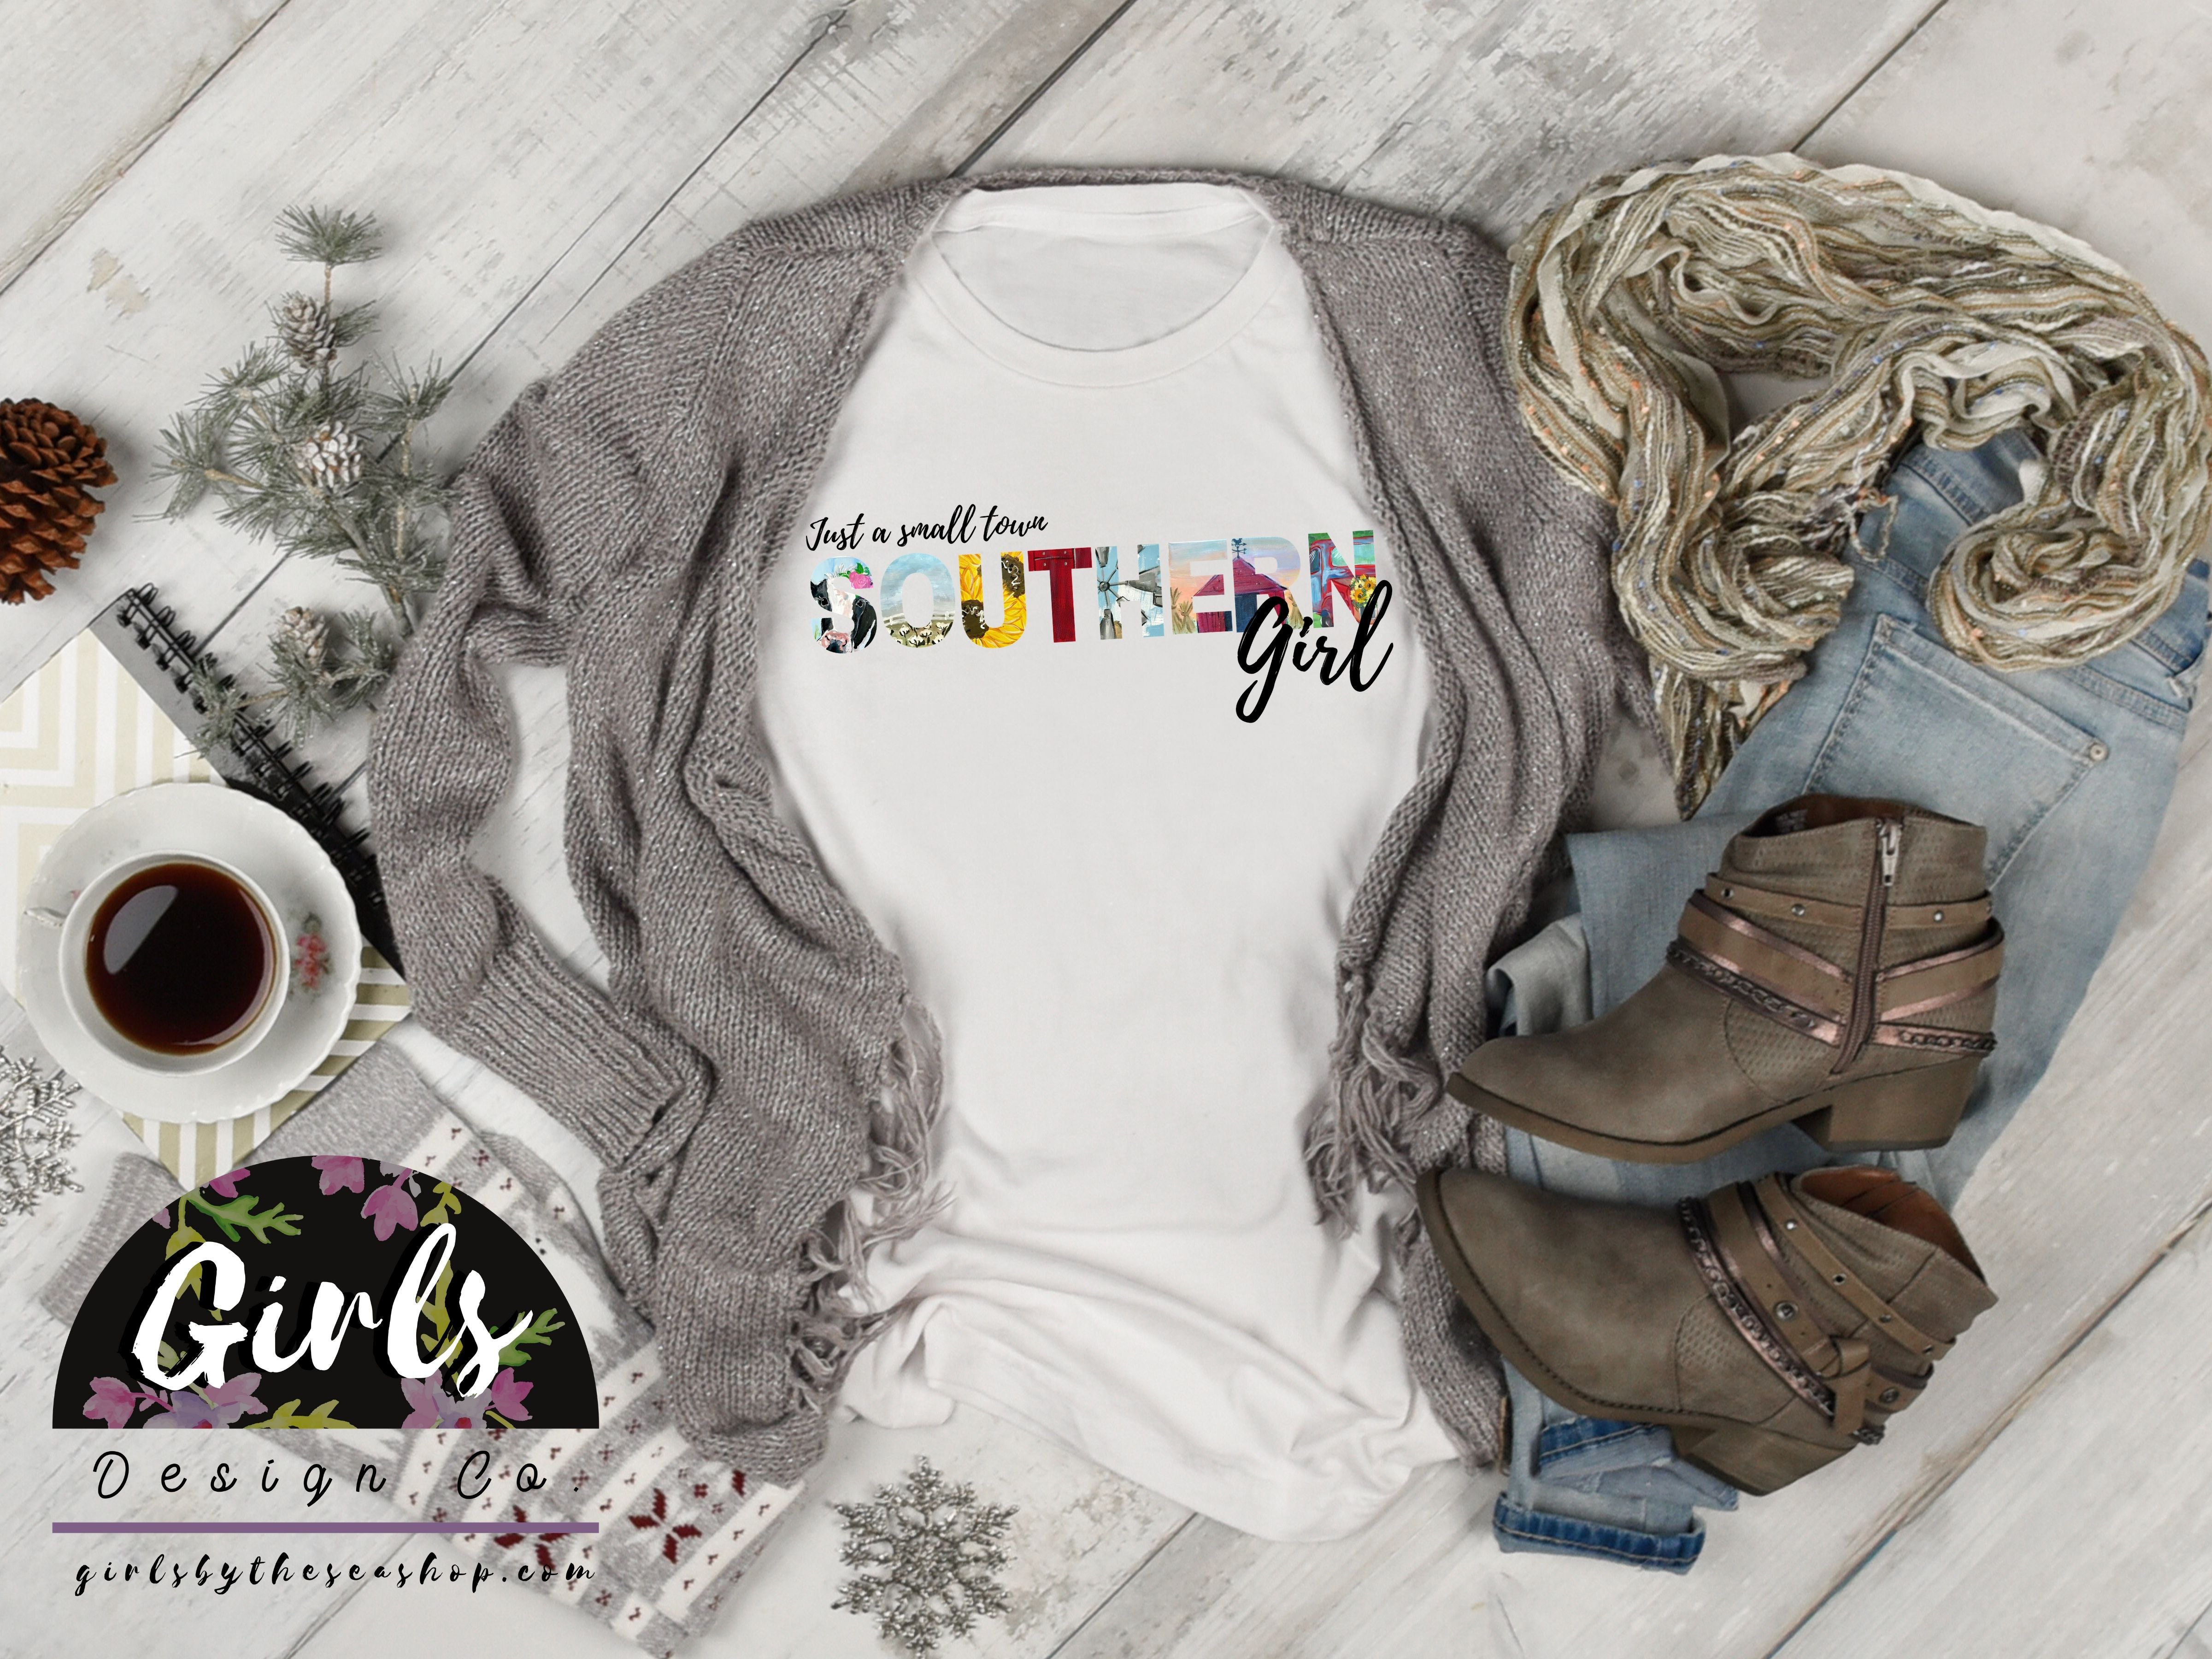 Small Town SOUTHERN Girl T-Shirt - Adults / Youth / Baby-Gift, retailshirts, southern, State-Shop-Wholesale-Womens-Boutique-Custom-Graphic-Tees-Branding-Gifts